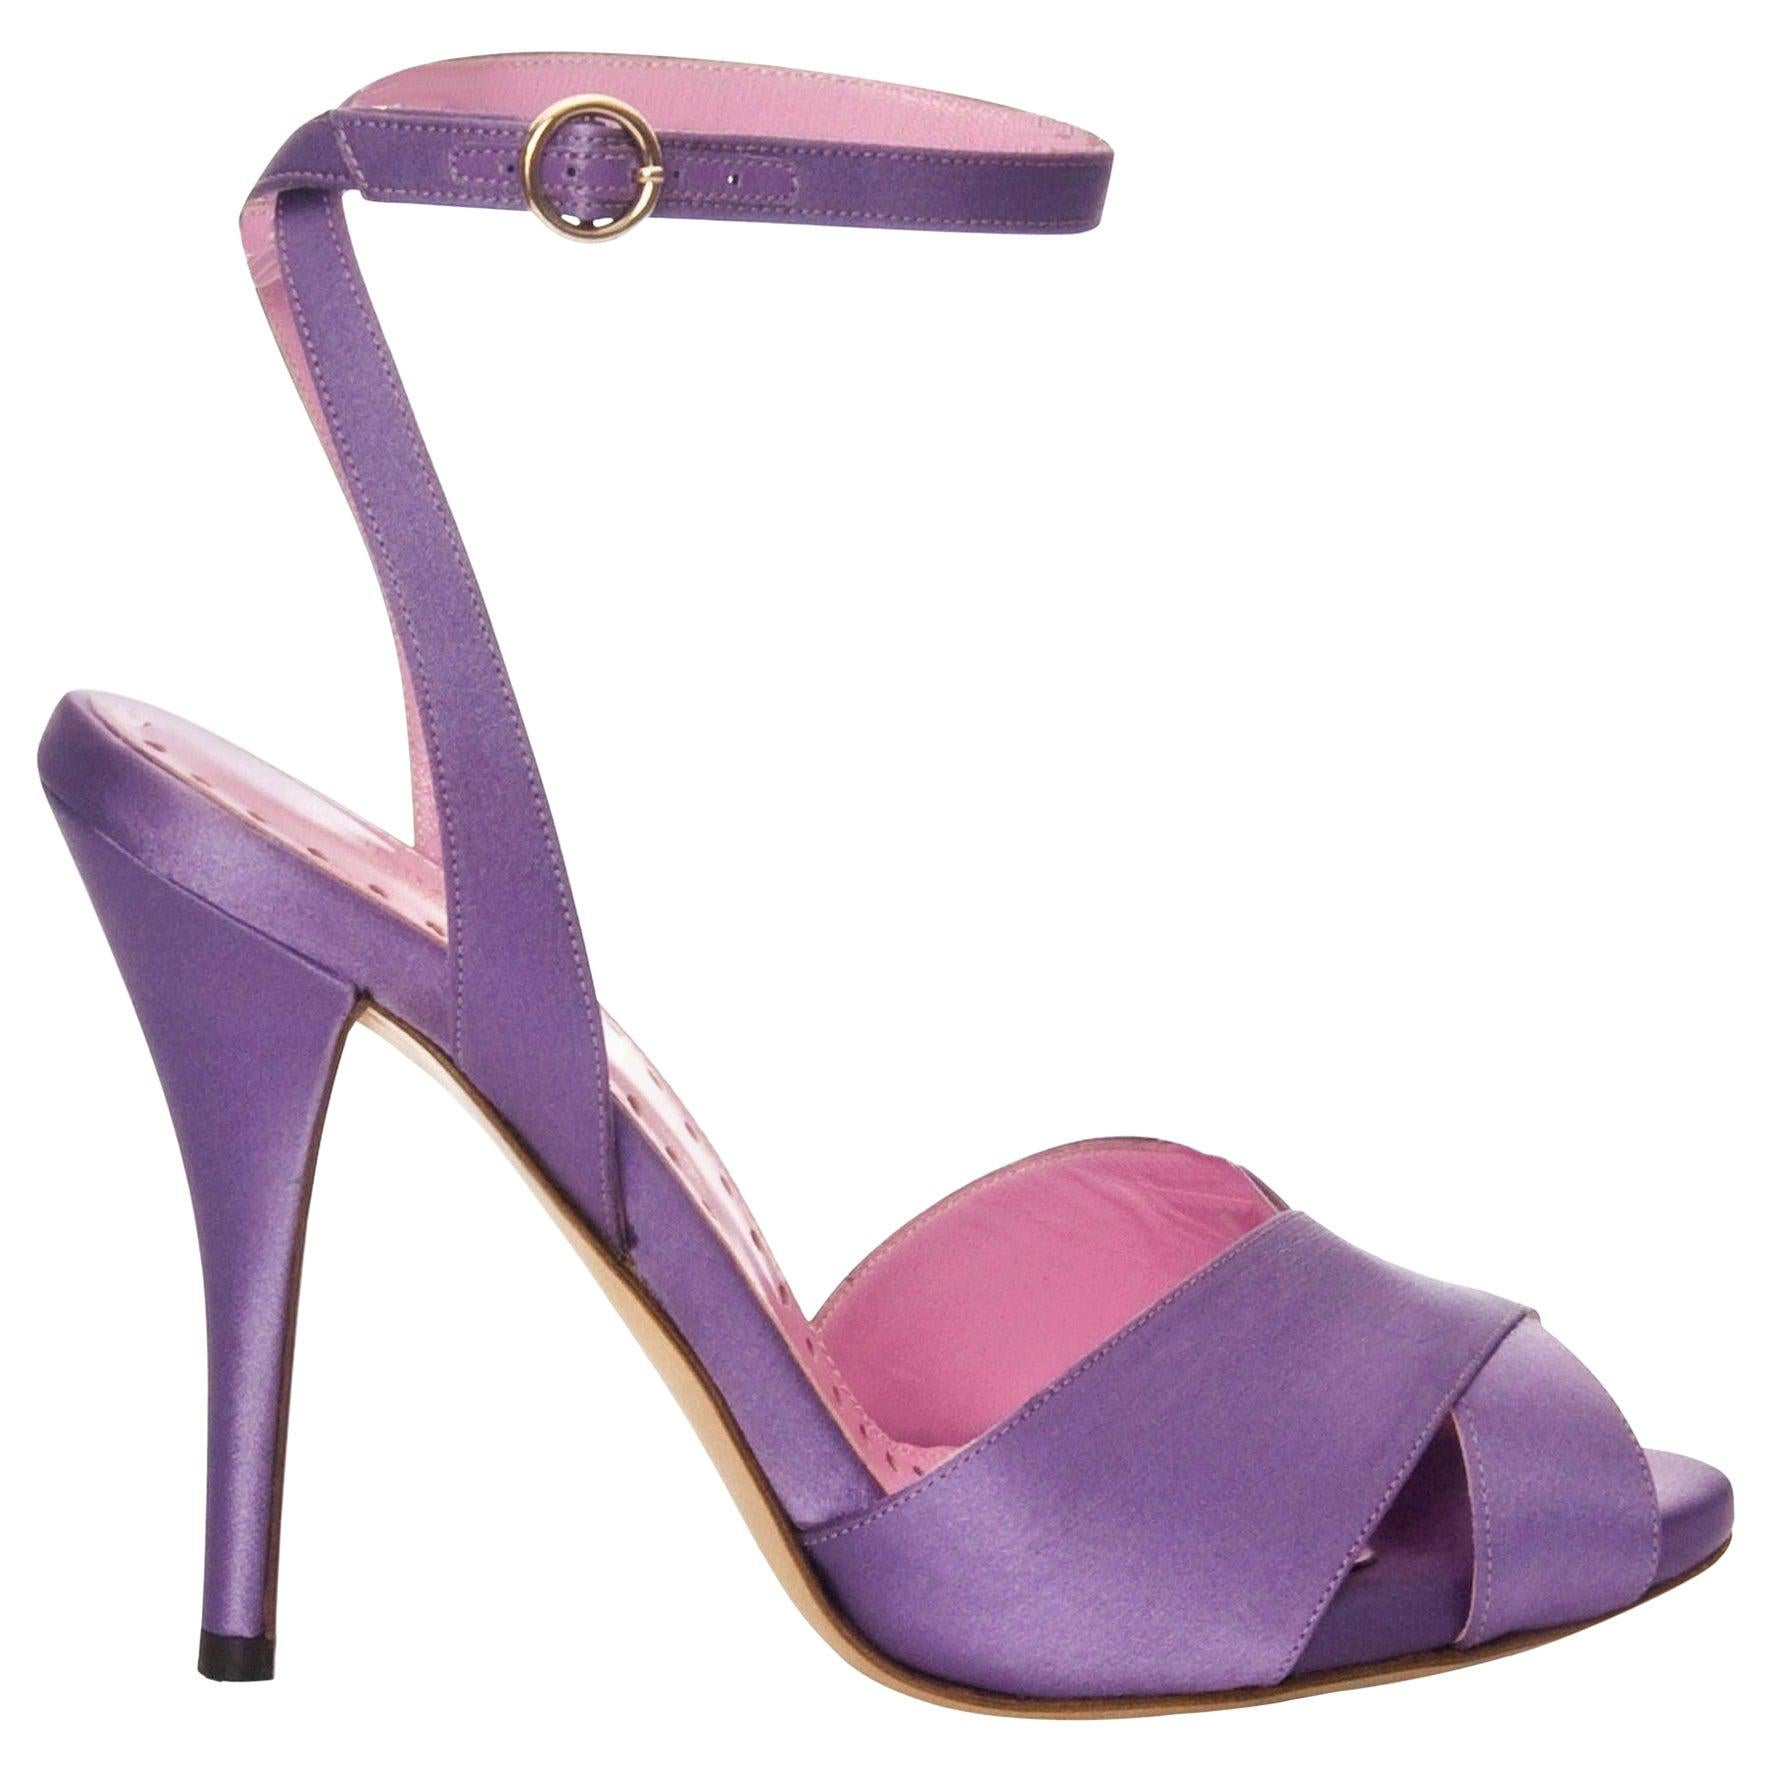 New Tom Ford for Yves Saint Laurent YSL Final Collection Satin Heels Sz 38.5